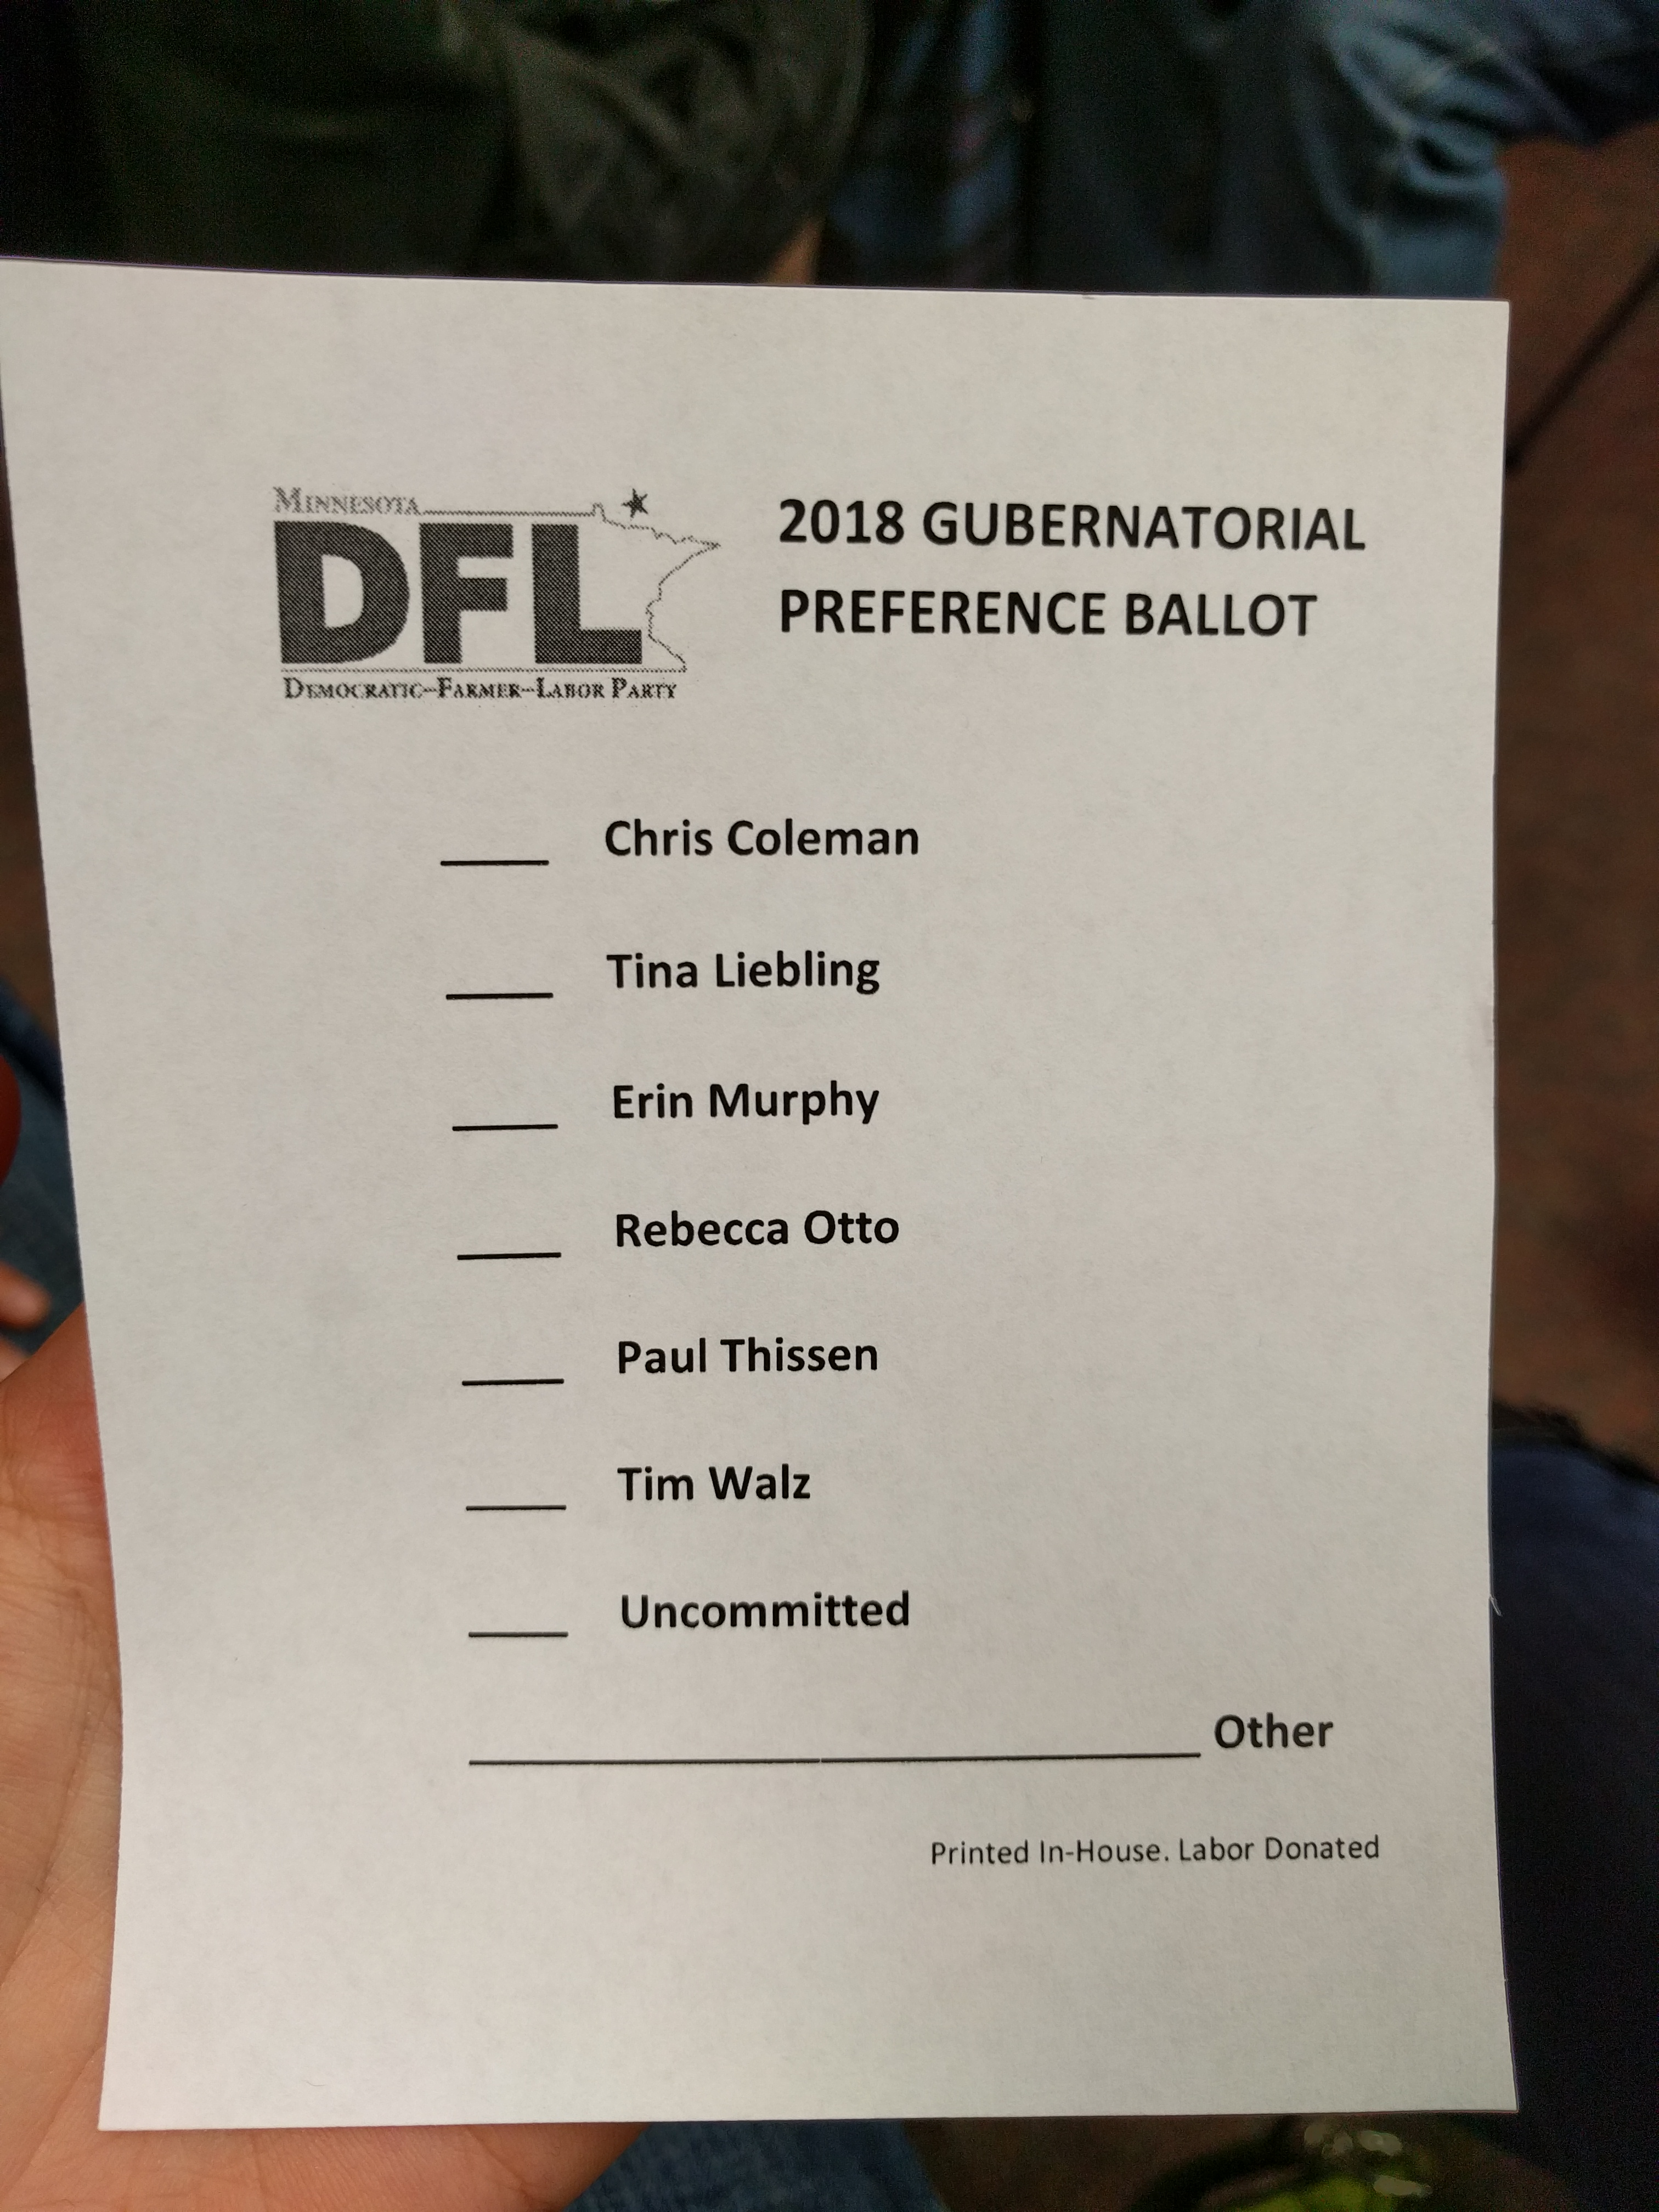 File:Straw poll ballot at the Minnesota DFL February 2018